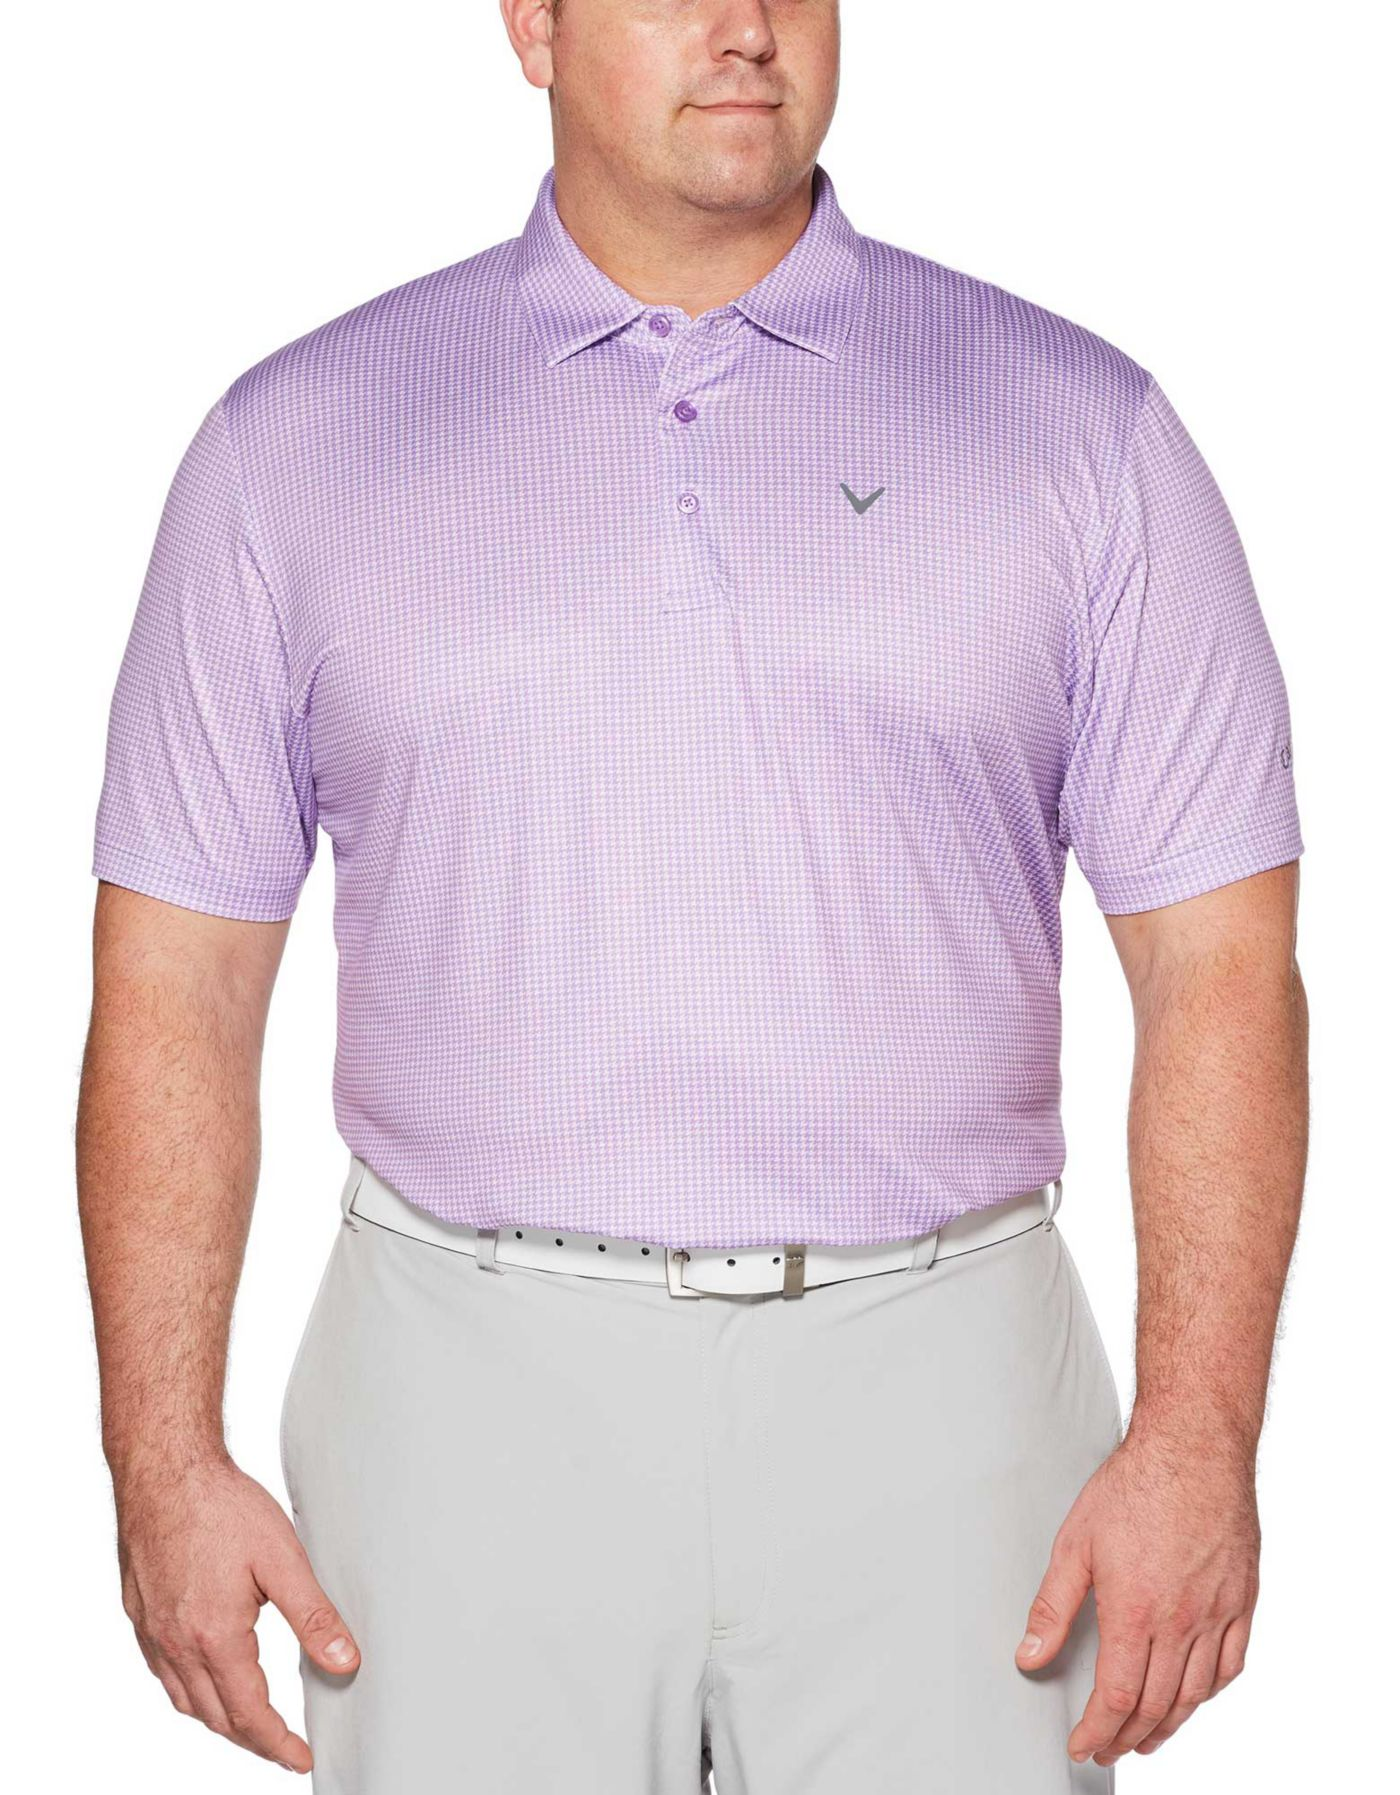 Callaway Men's Houndstooth Printed Golf Polo - Big & Tall